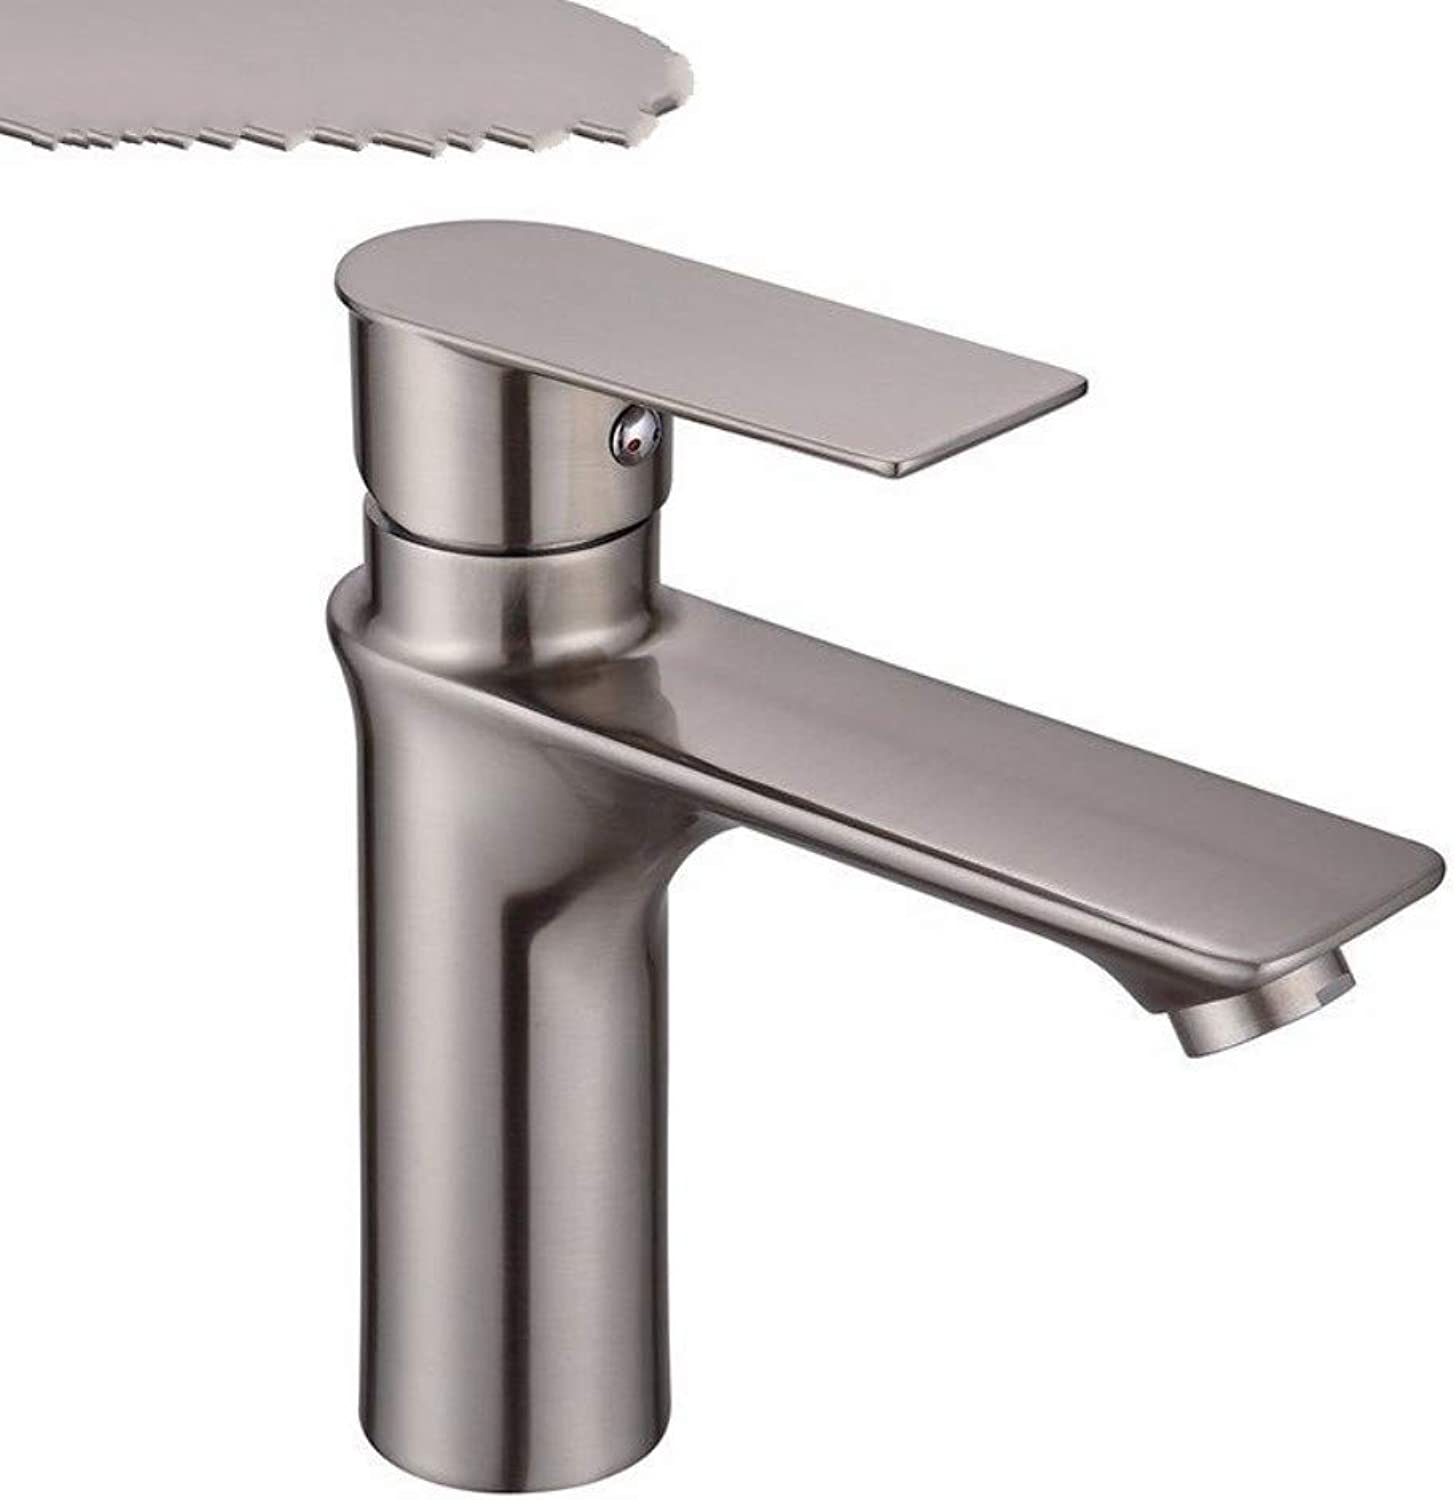 YUJING Mixer Tap Bathroom Sink Faucet Contemporary Style Bath Mixer Hot And Cold Water Wire Drawing Bathroom Taps